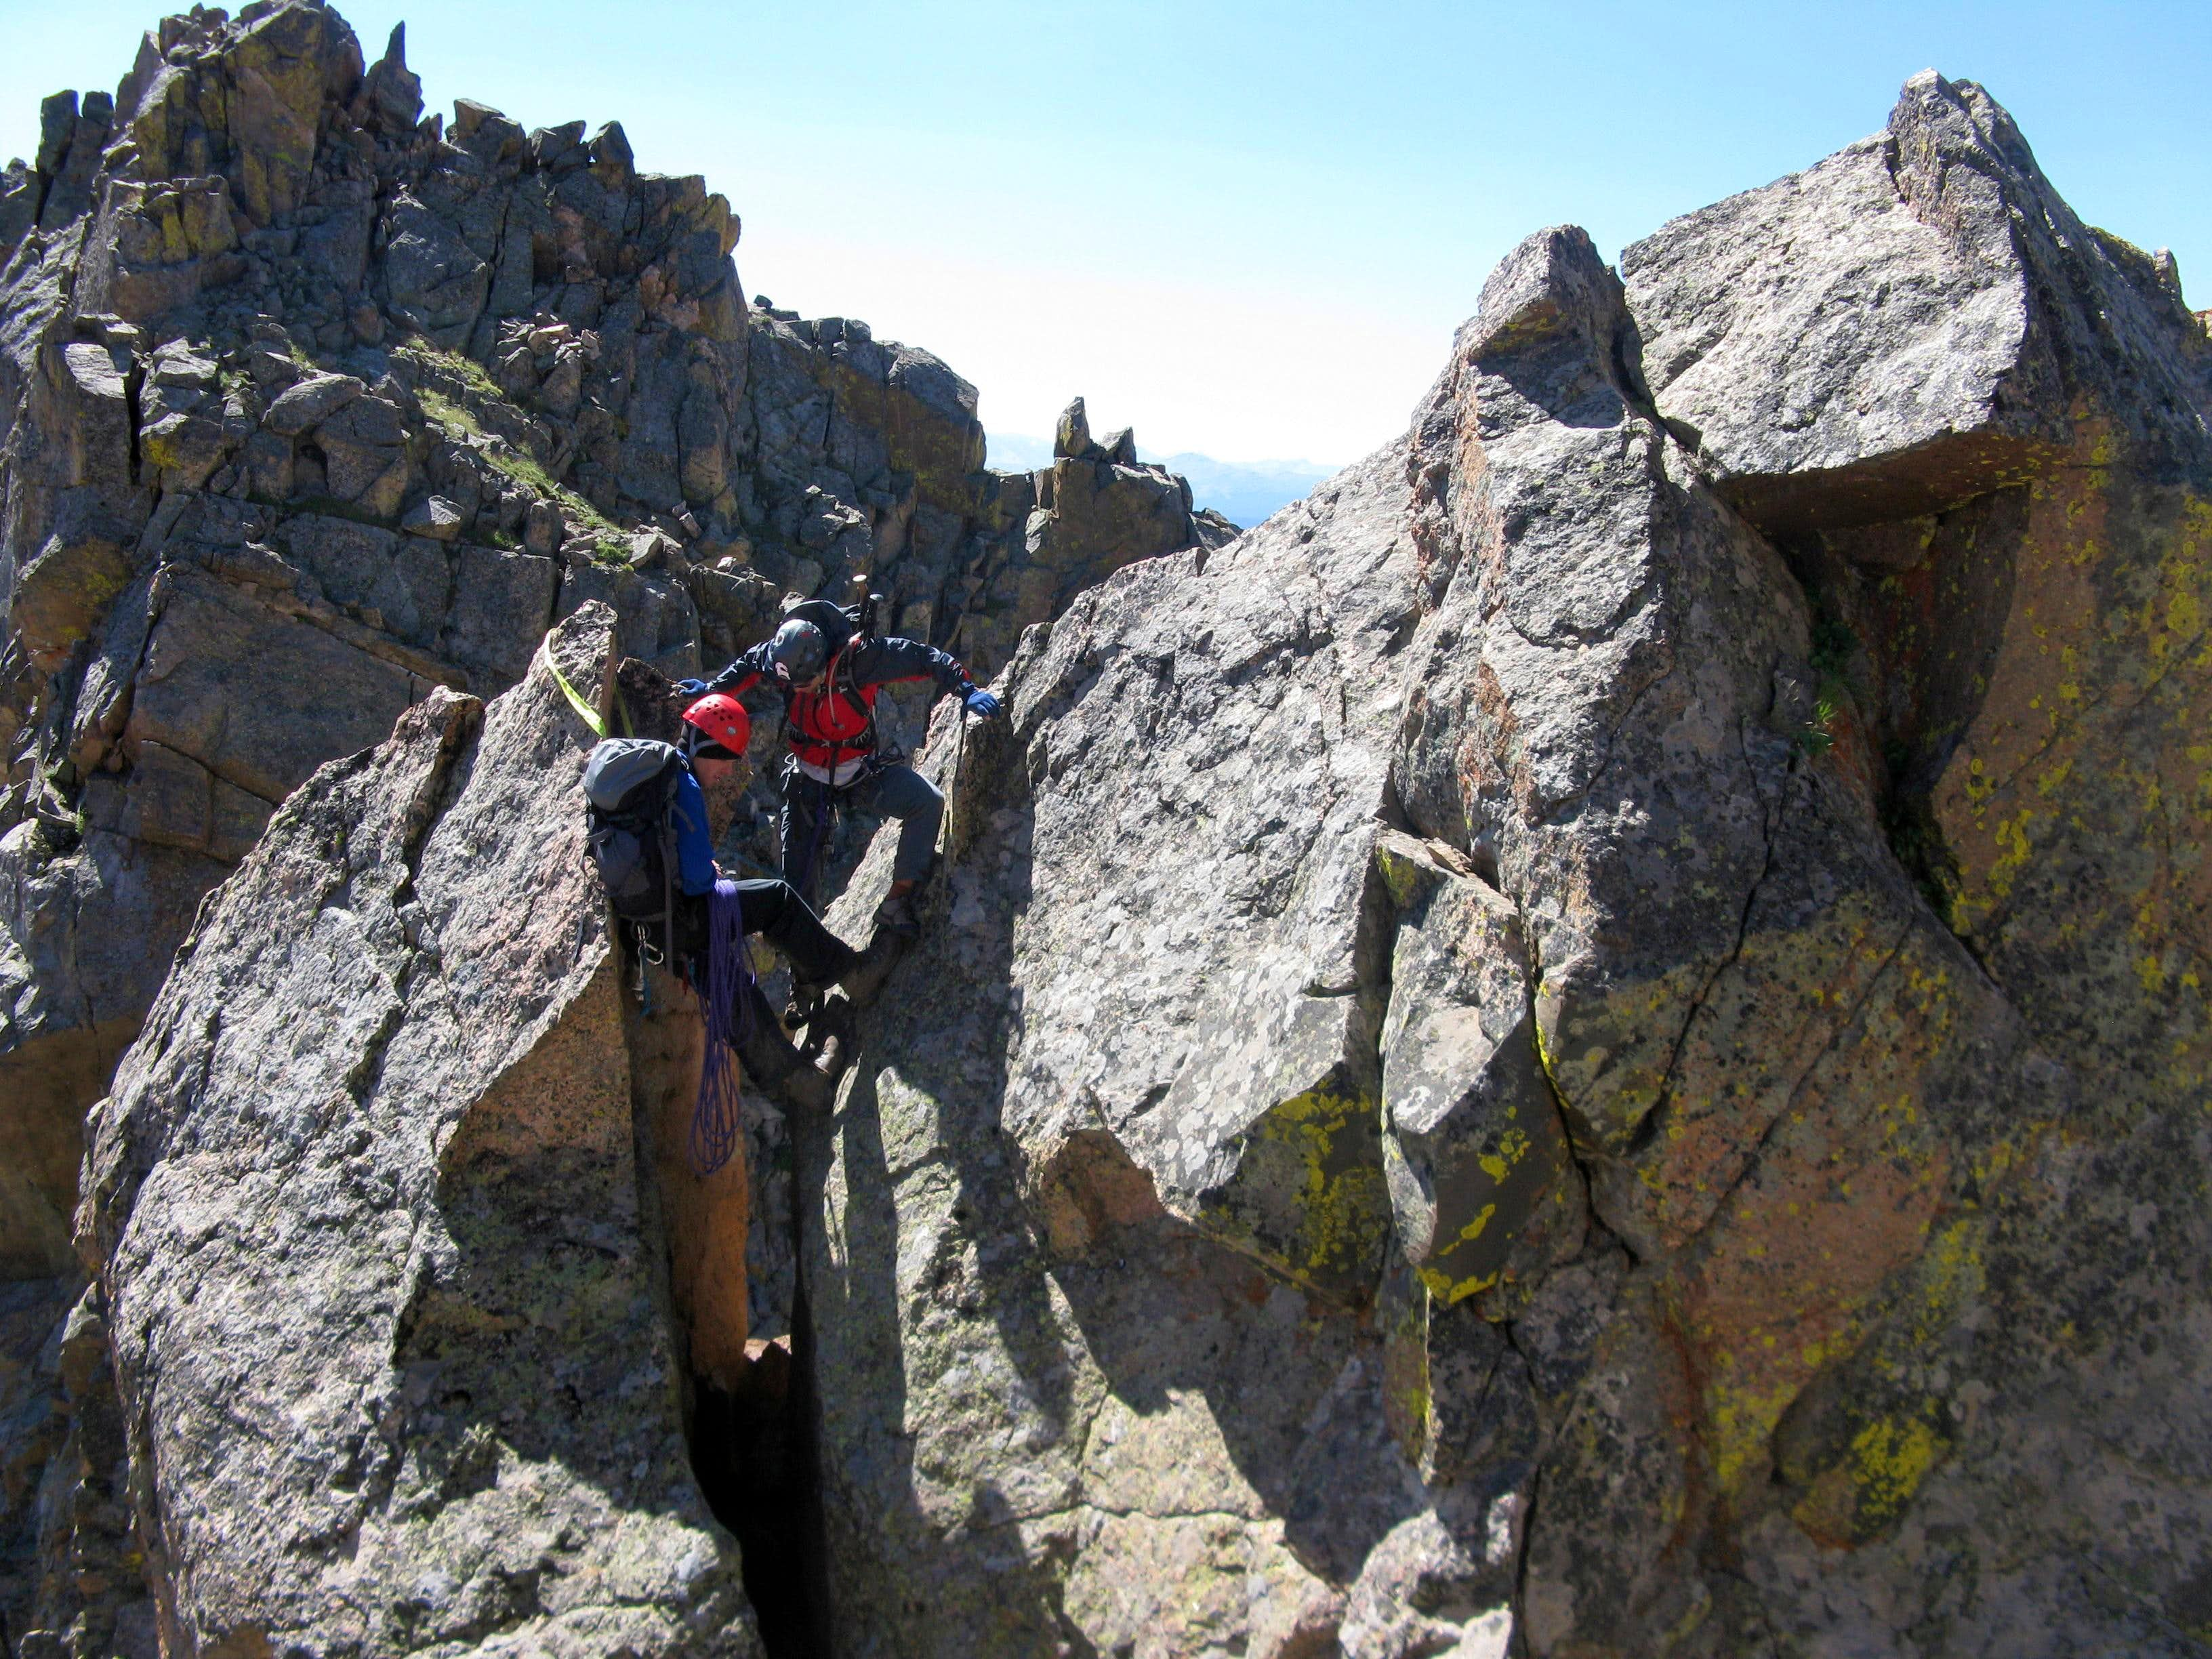 The Partner Traverse: A Gore Range Scramblefest